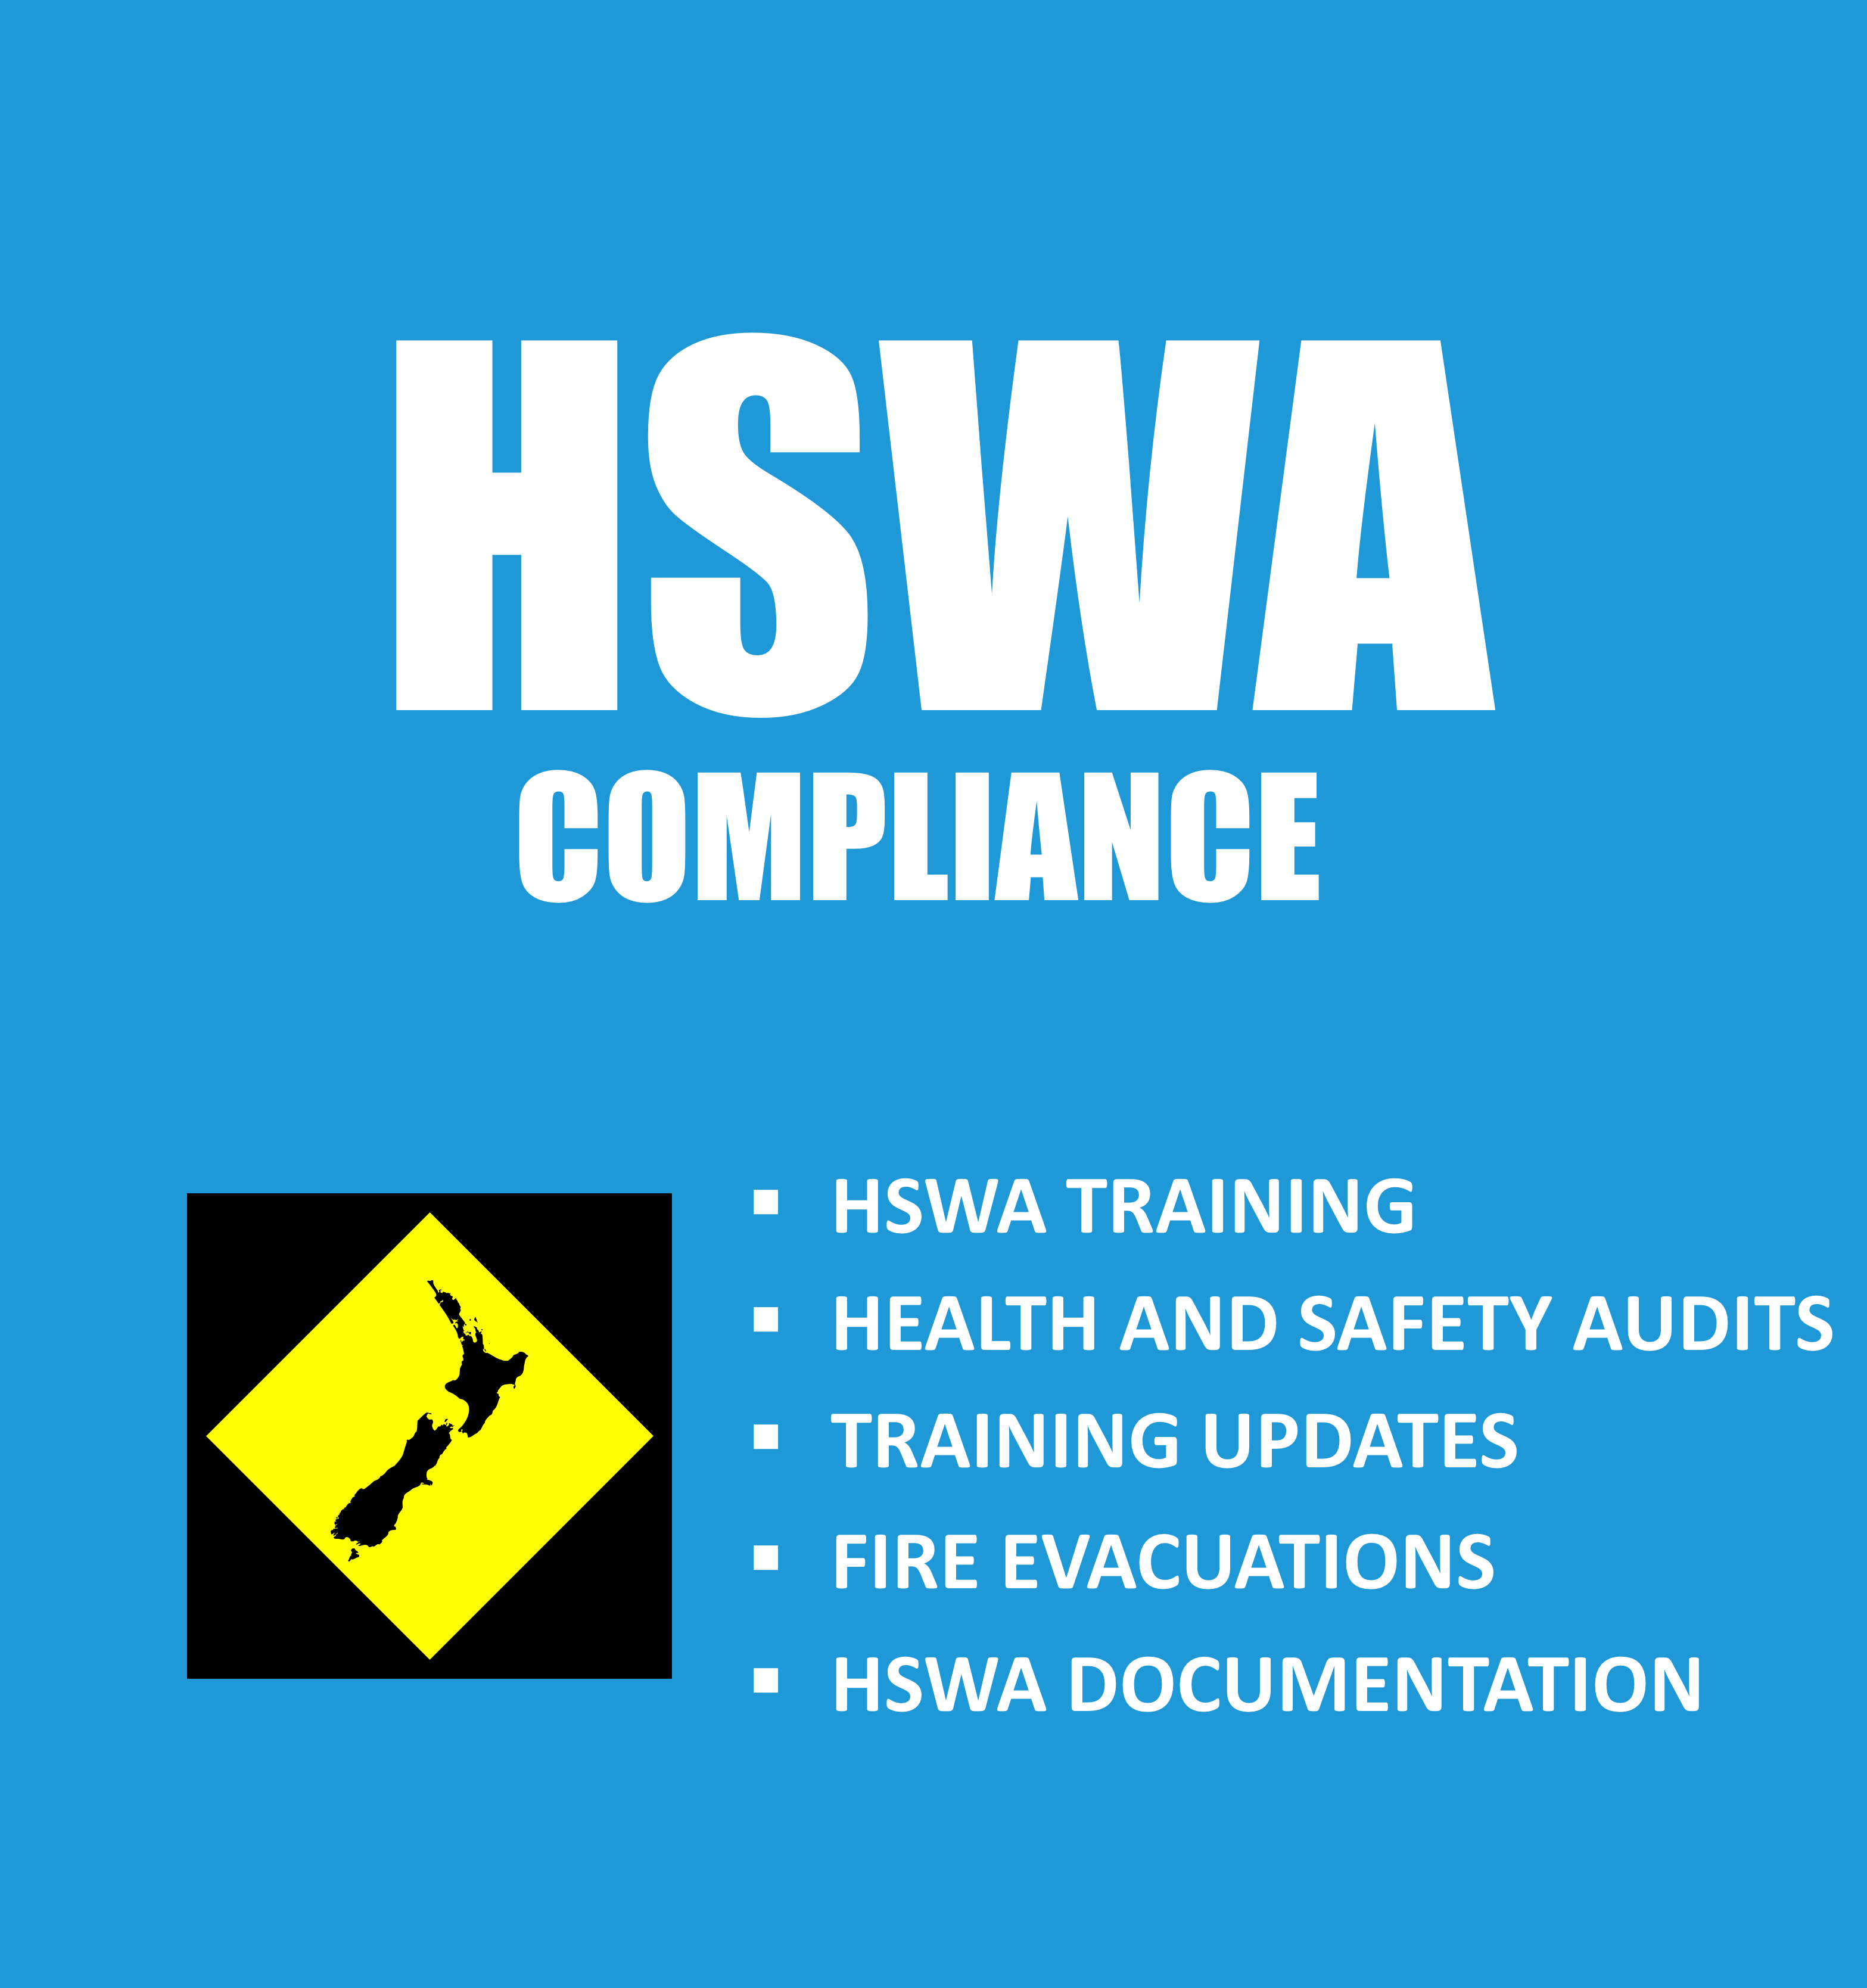 HSWA Training, Health and Safety Audits, Training Updates, Fire Evacuations, HSWA Documentation